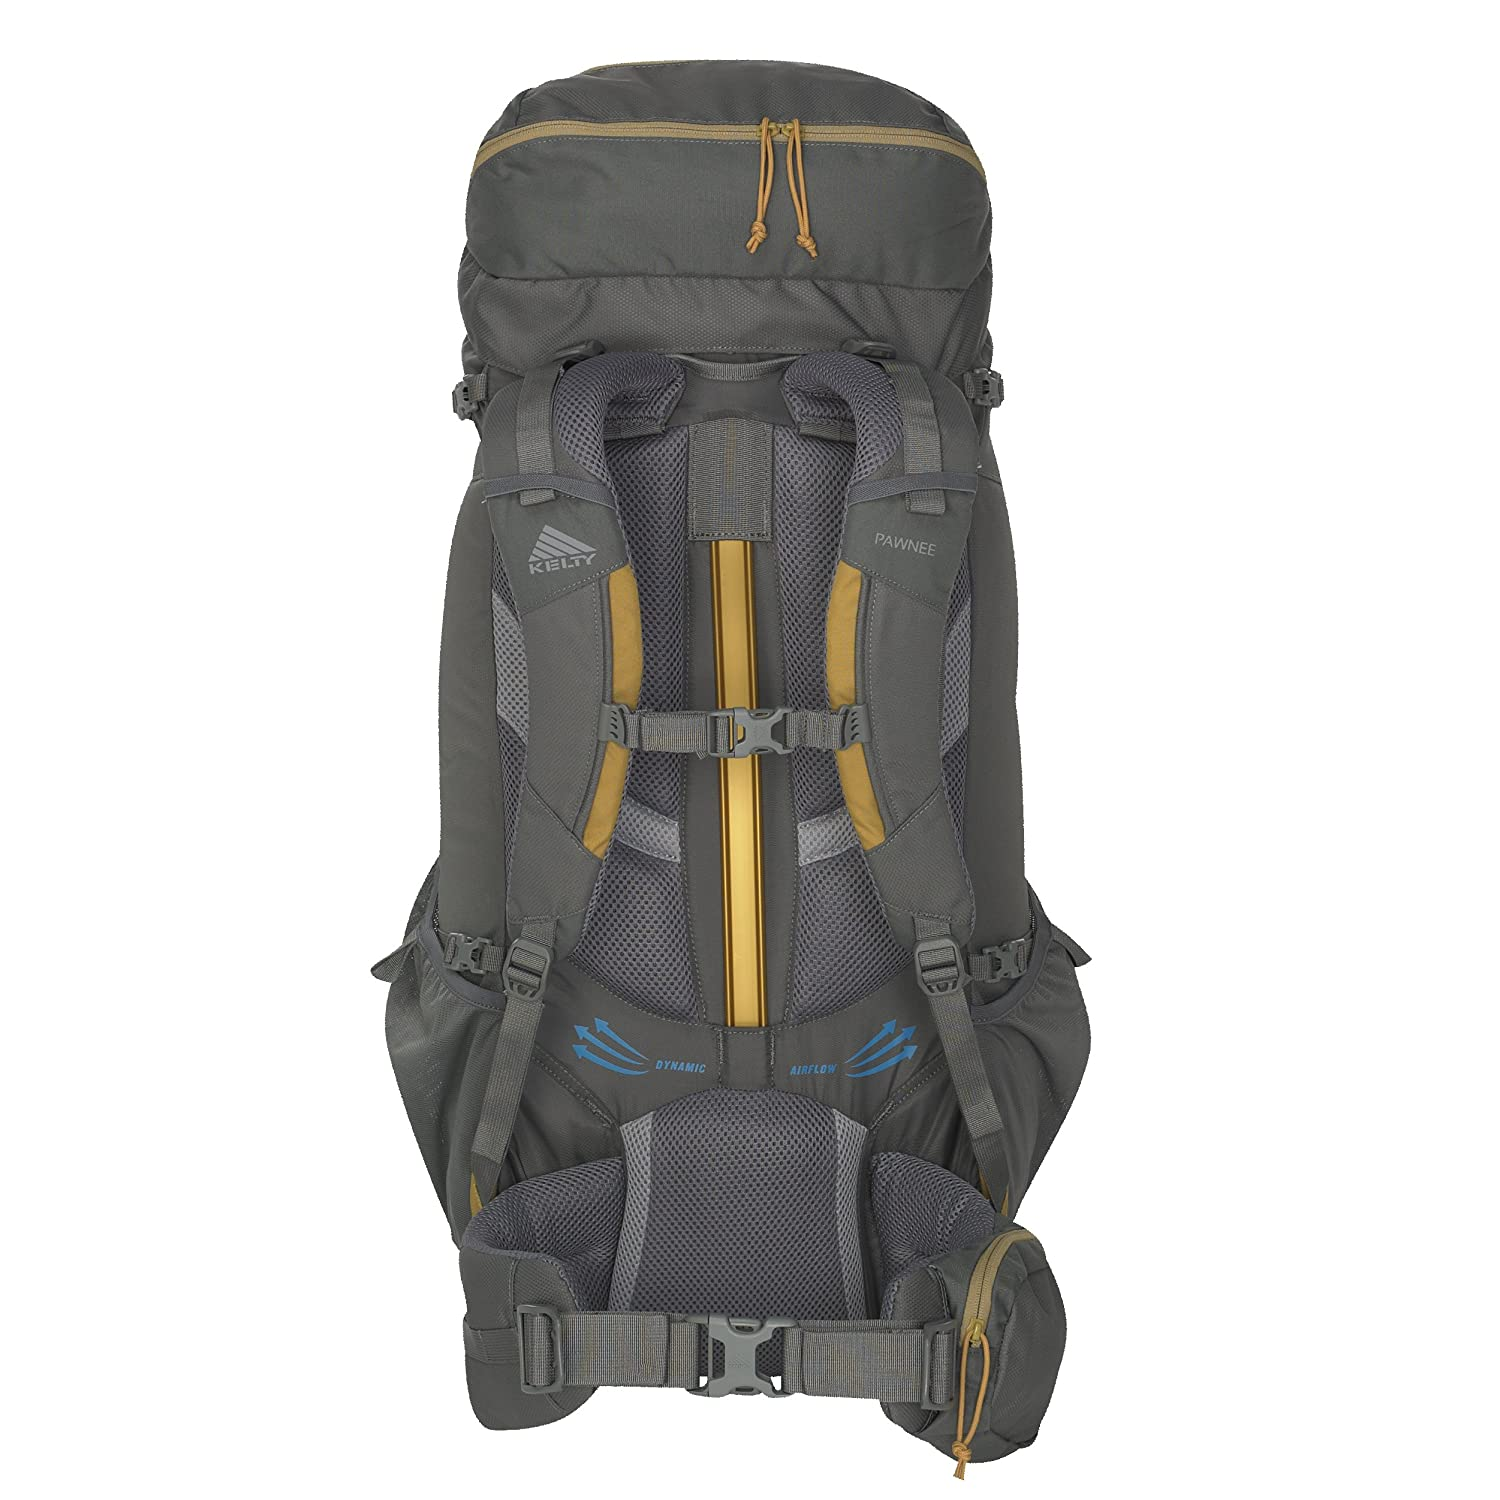 2993beda342 Amazon.com : Kelty Pawnee 55-Liter Backpack, Incense, Small/Medium : Hiking  Daypacks : Sports & Outdoors